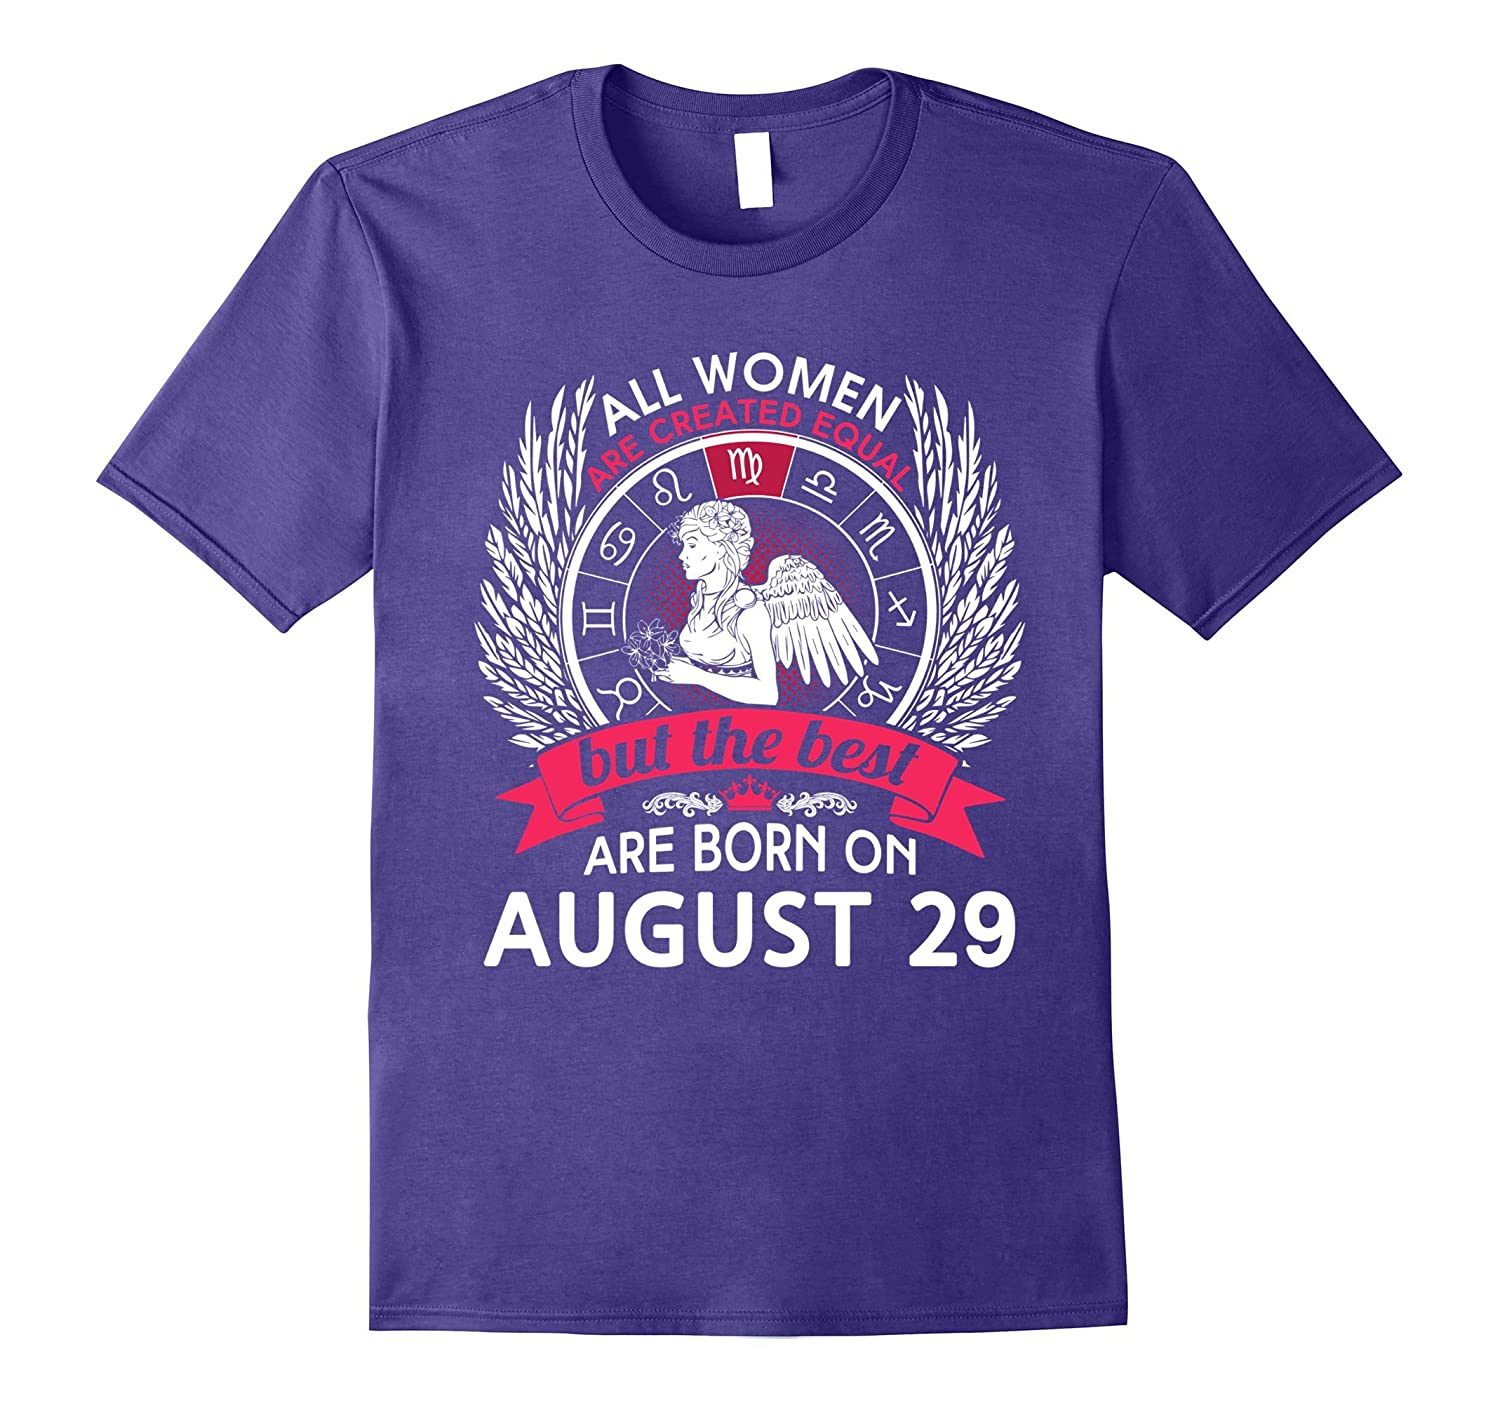 All Women Are Created Equal Born On August 29 T-shirt- TPT